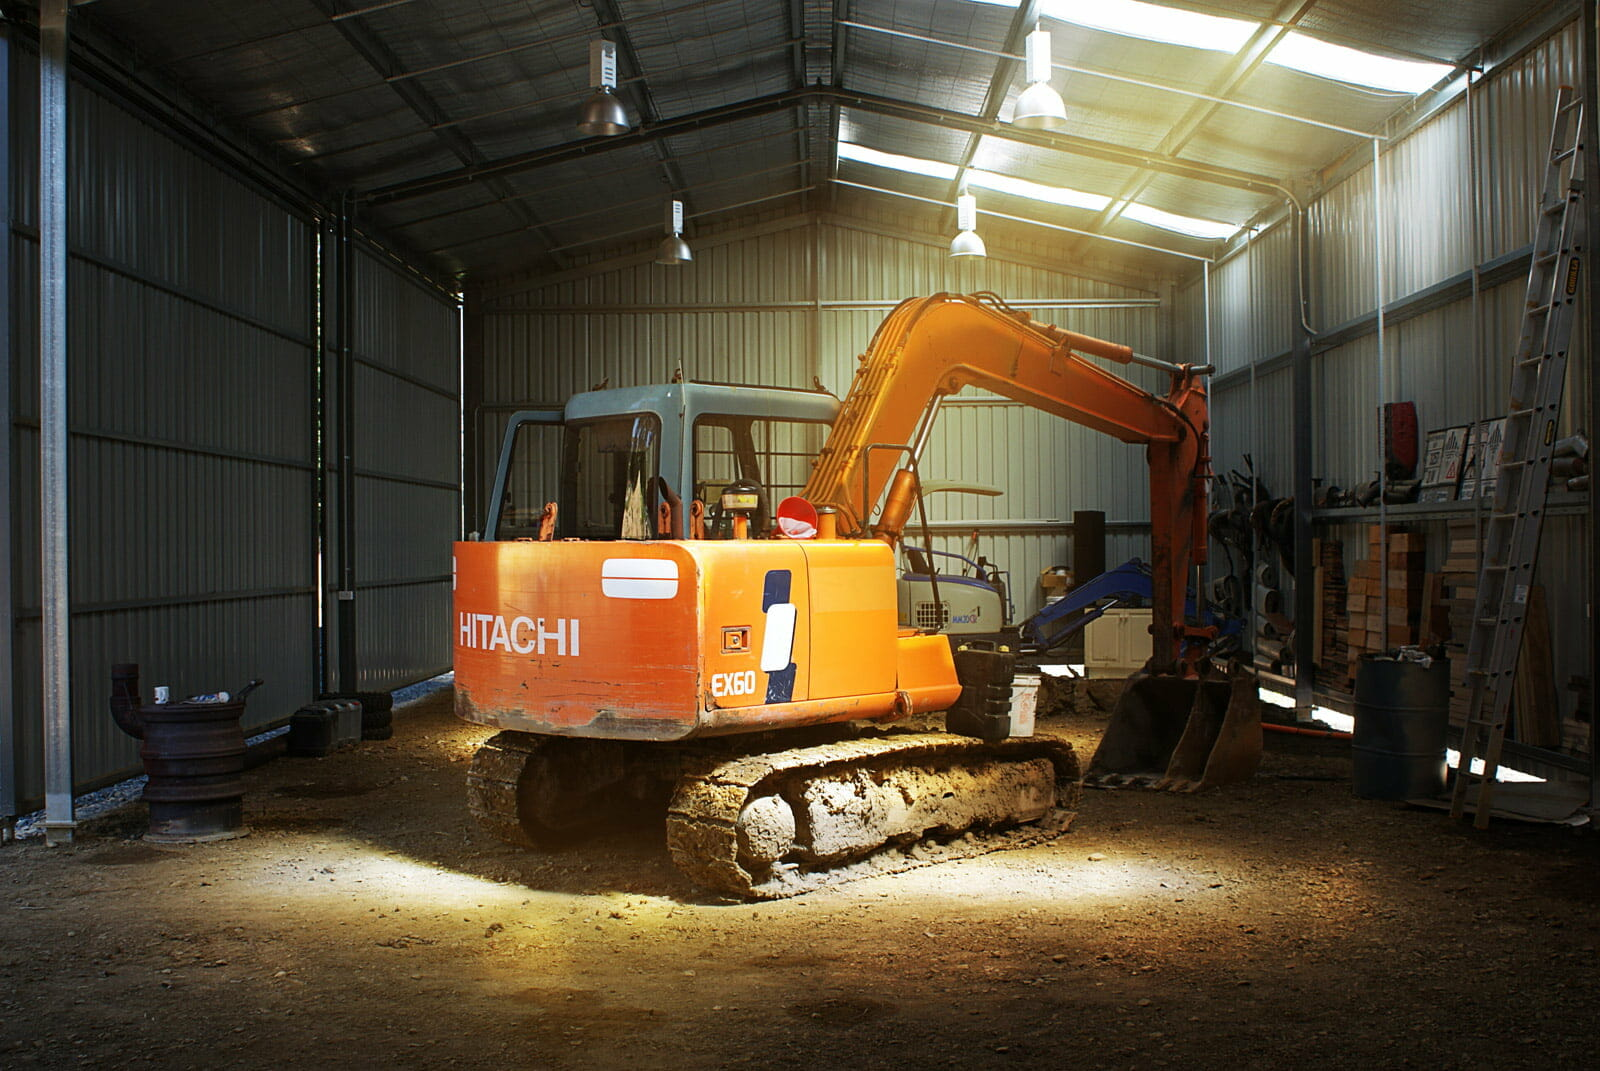 machinery shed with digger